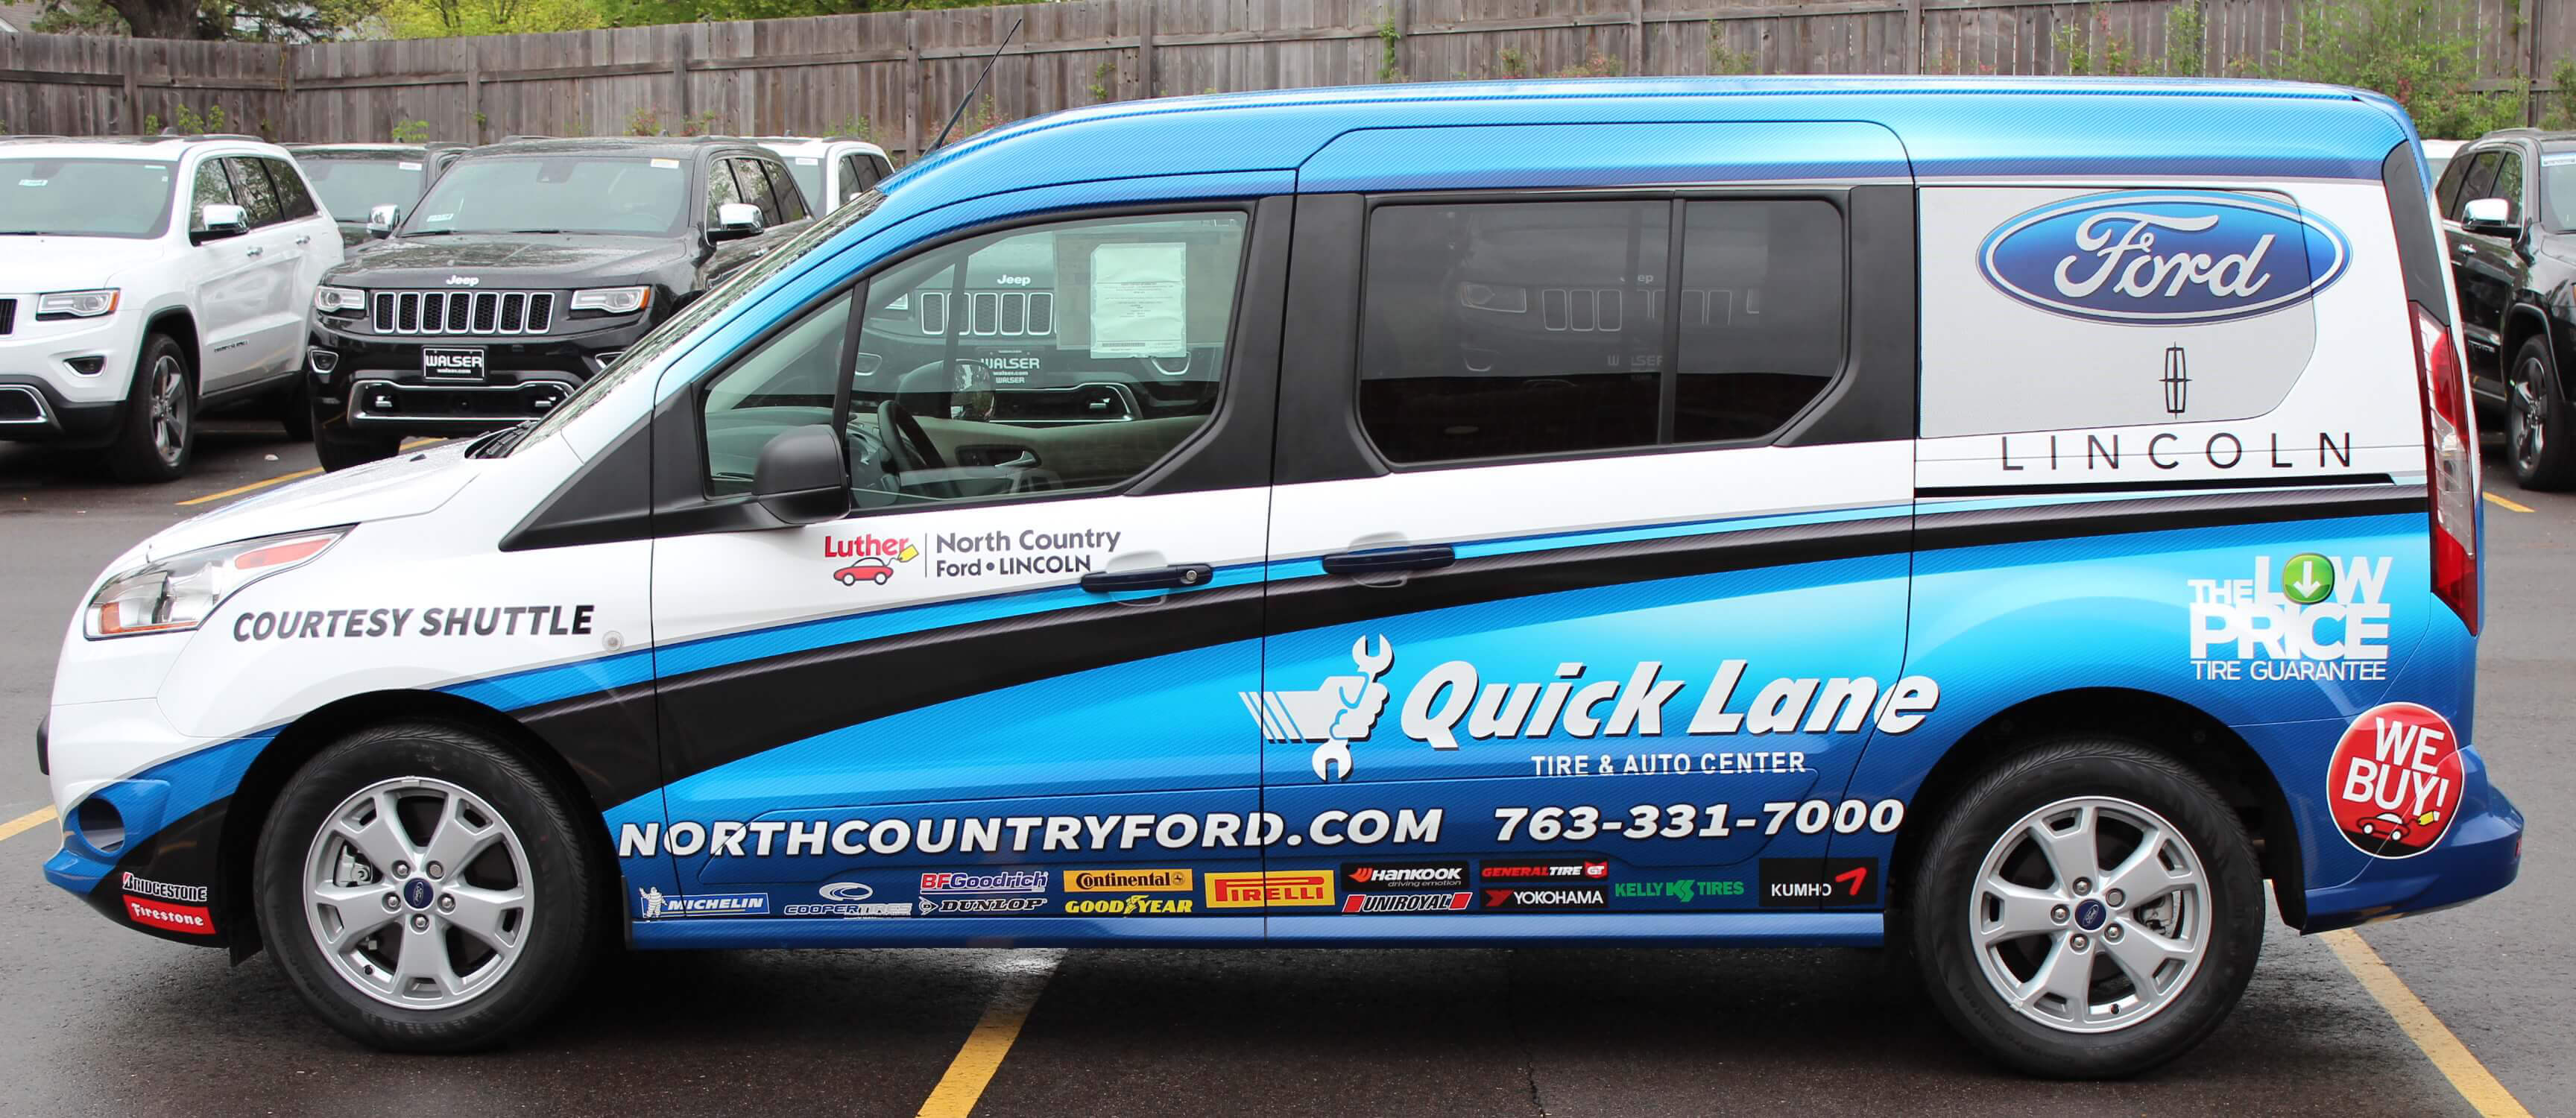 North Country Ford Vehicle Wrap